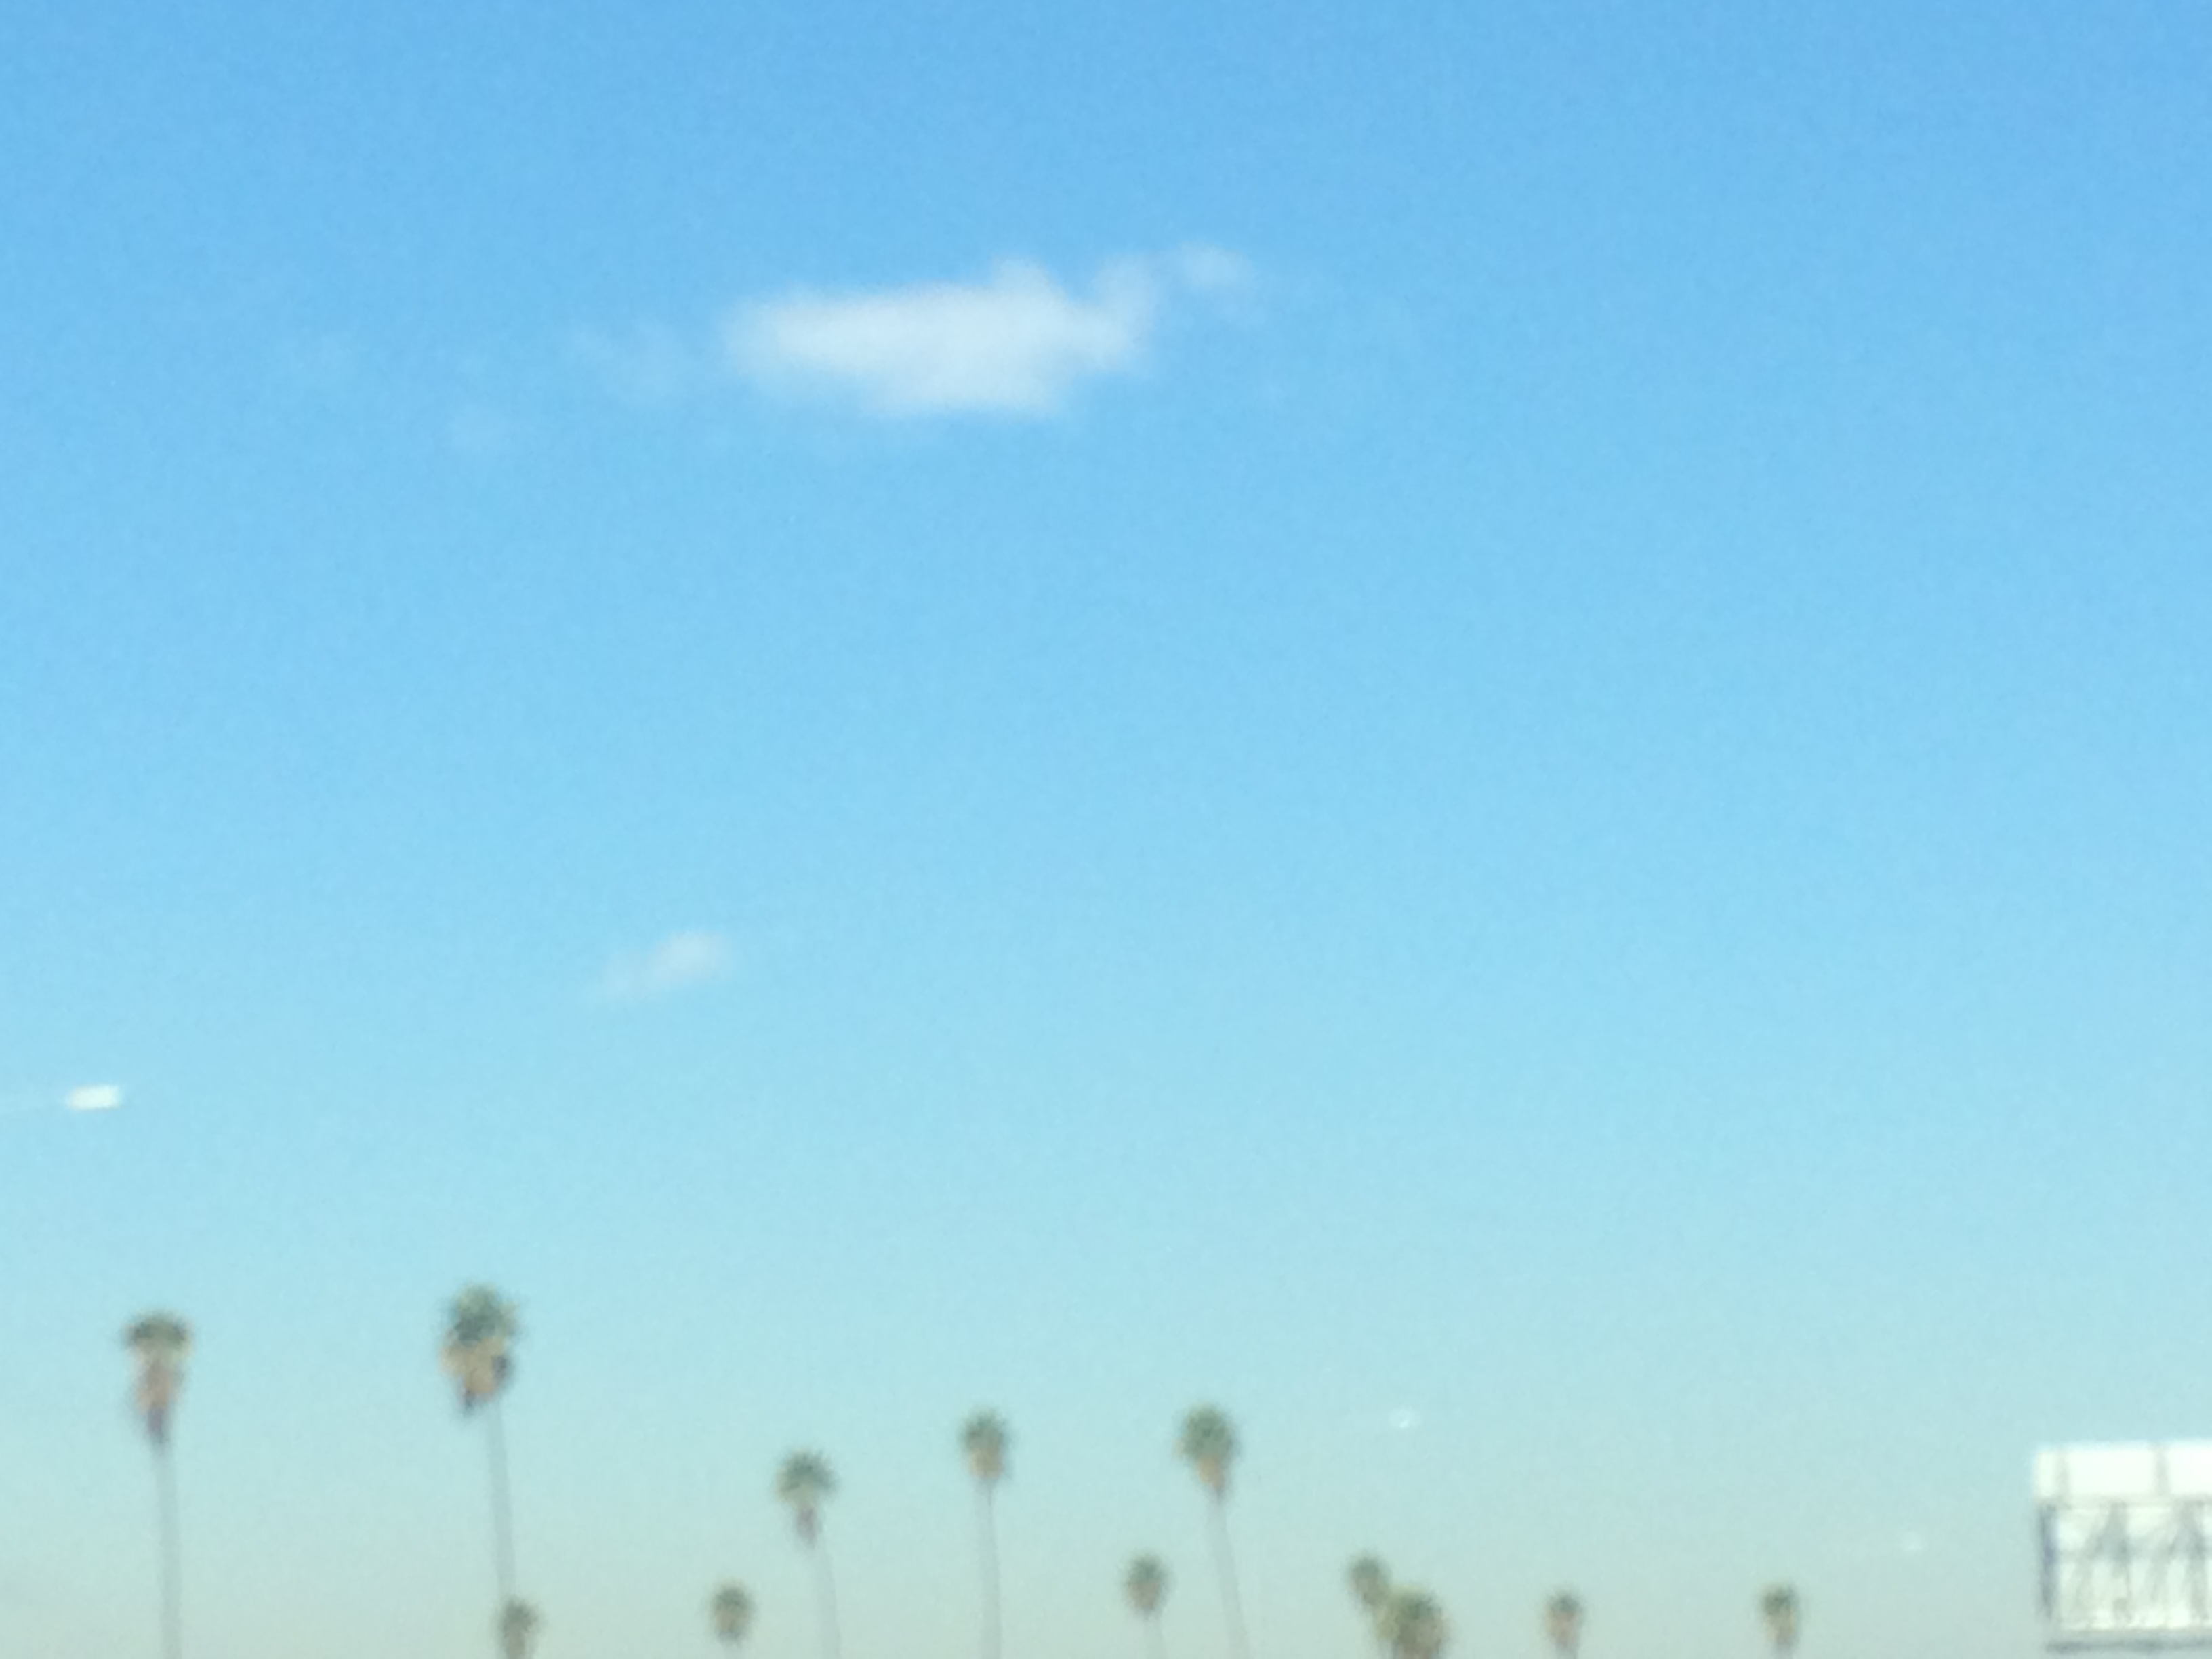 The tops of palm trees beneath a blue sky, single white cloud floats near the top center of the image.